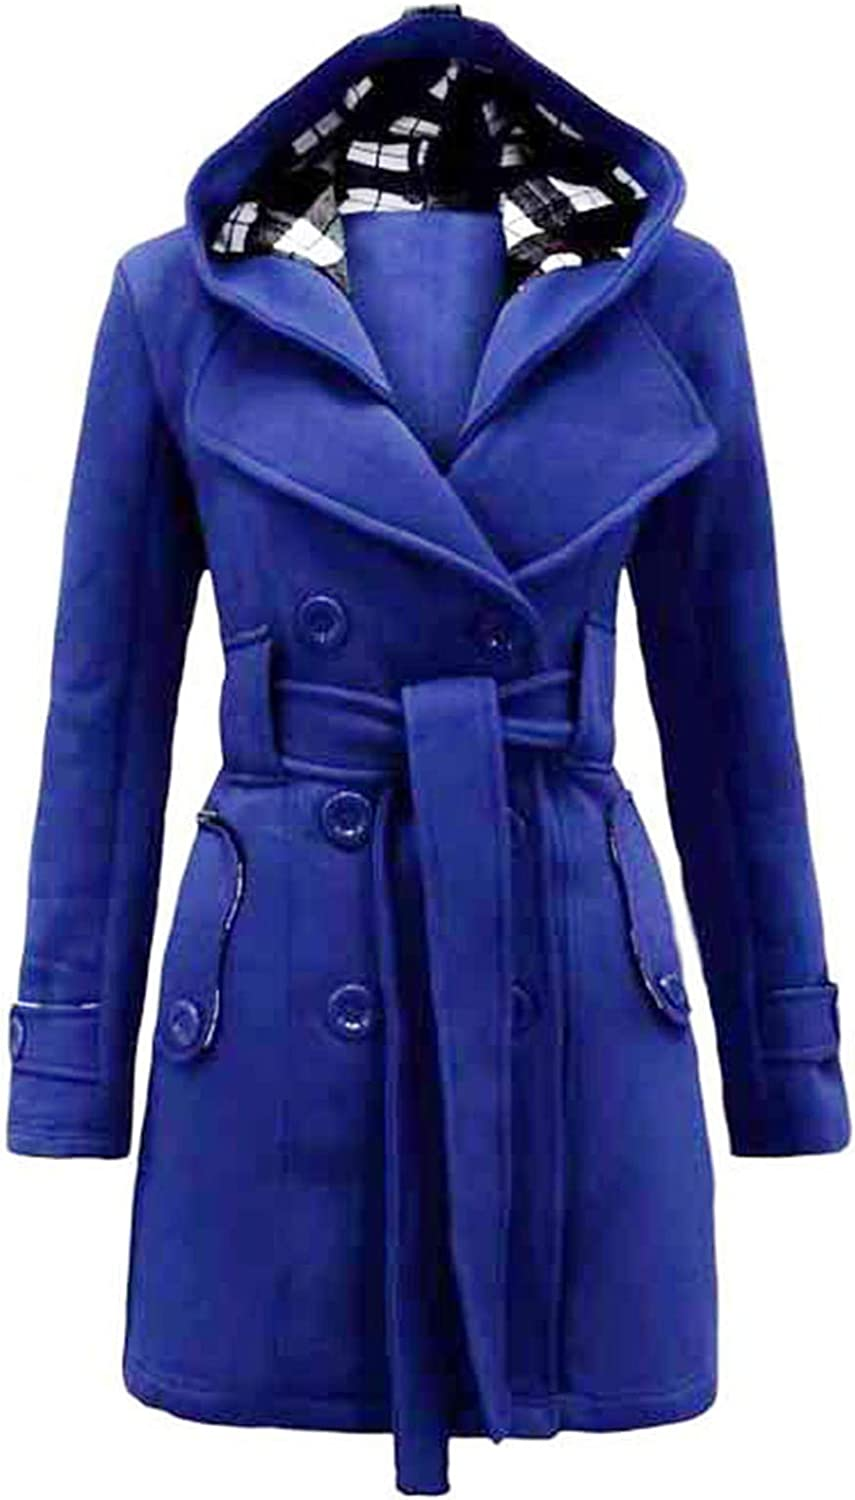 Womens' Topics on TV Outerwear Jackets Coats Manufacturer OFFicial shop Plaid Jacket Hoodie Tre Lined